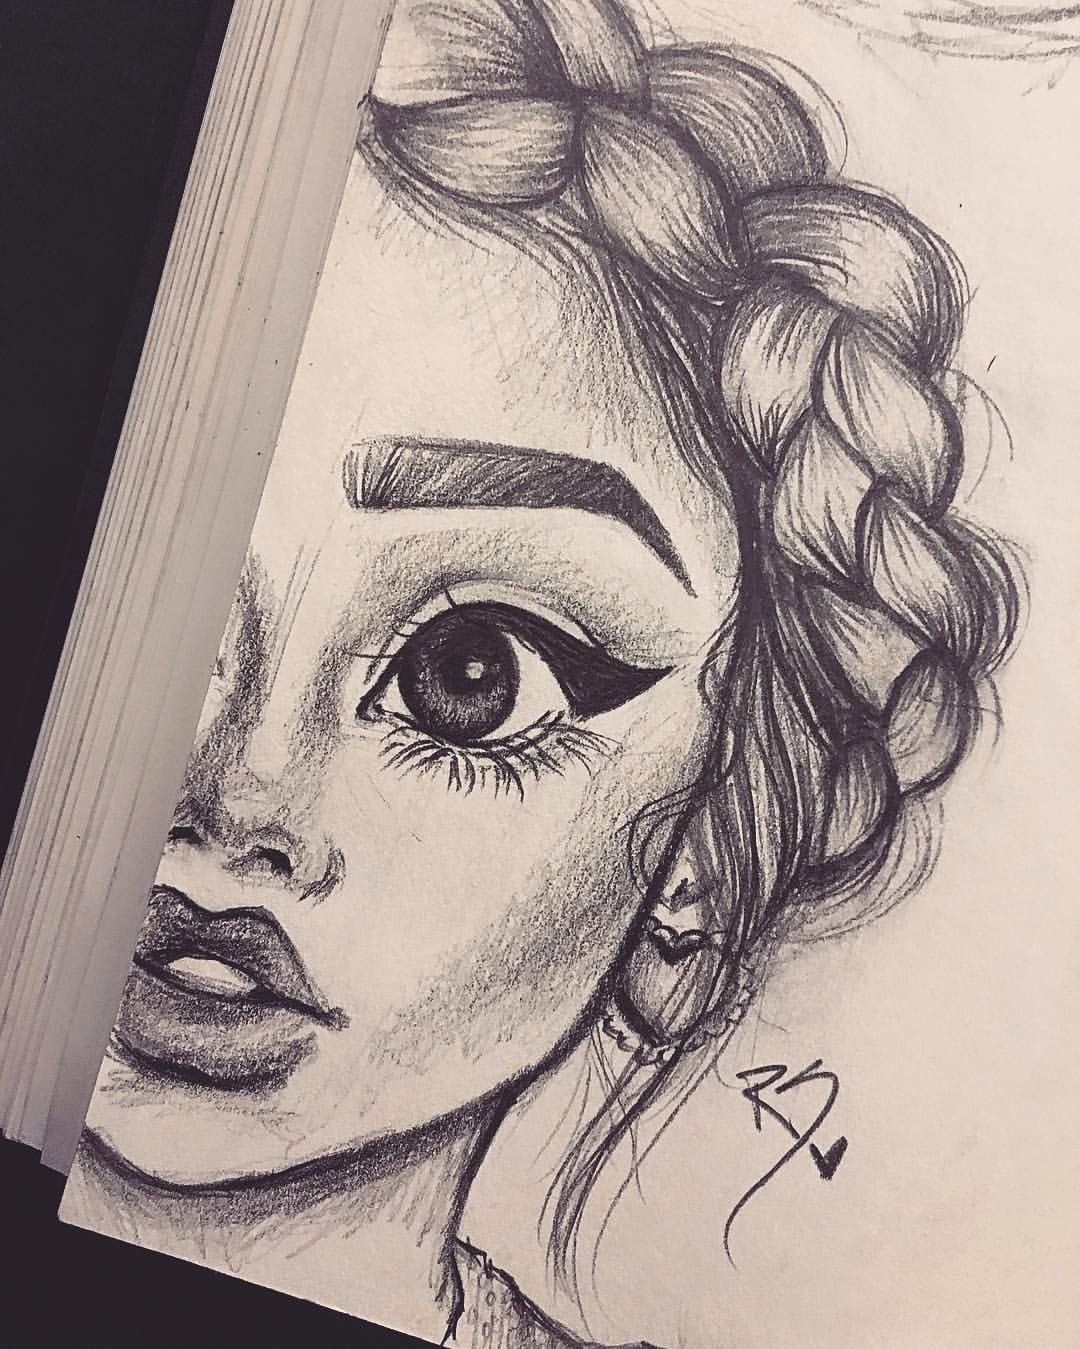 Best Drawings On Tumblr Cool Drawing Ideas For Teenage Girls 19